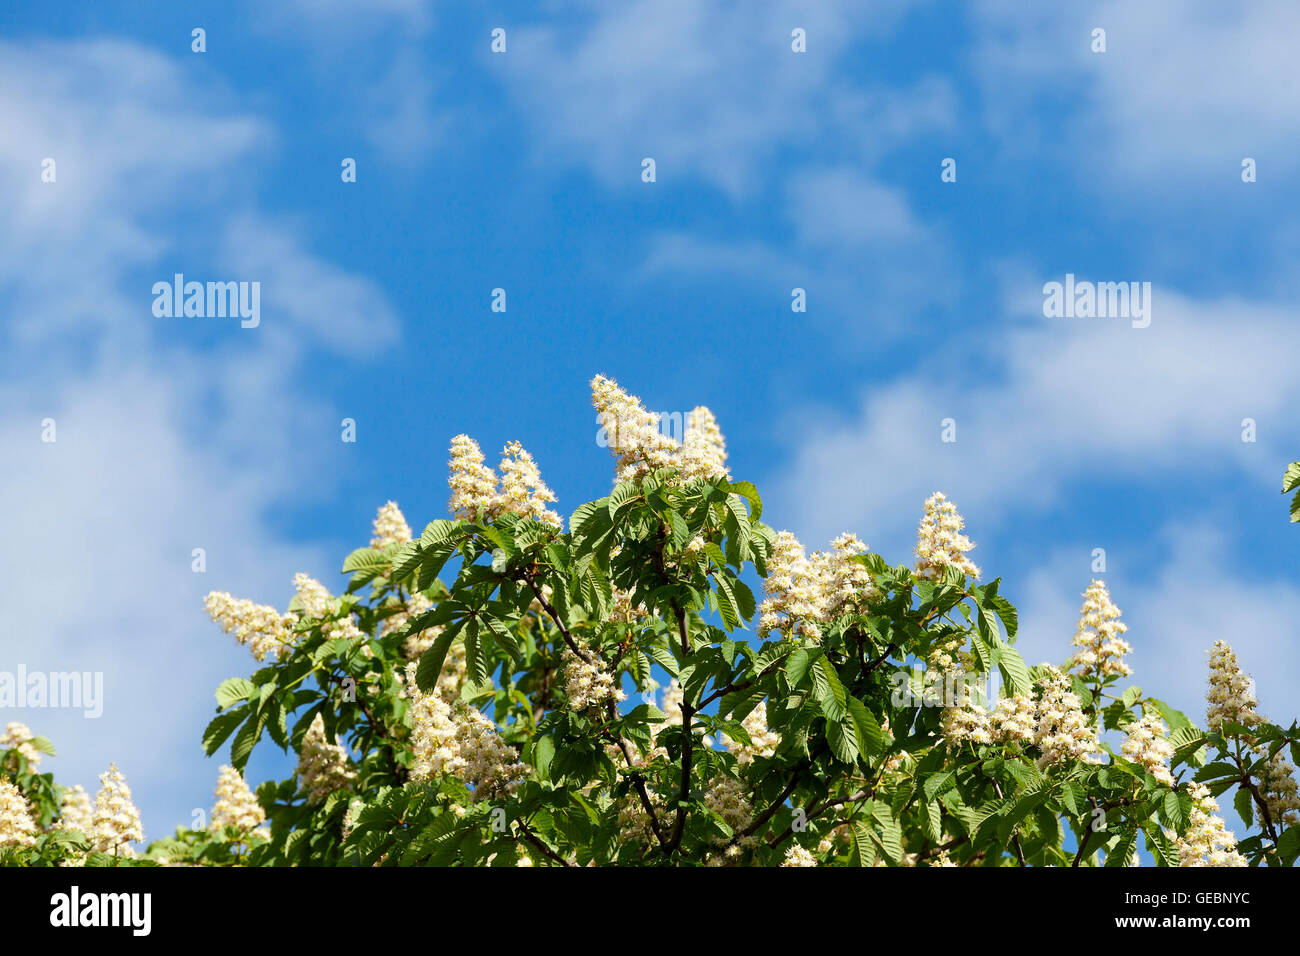 blooming chestnut tree in the spring Stock Photo Royalty Free